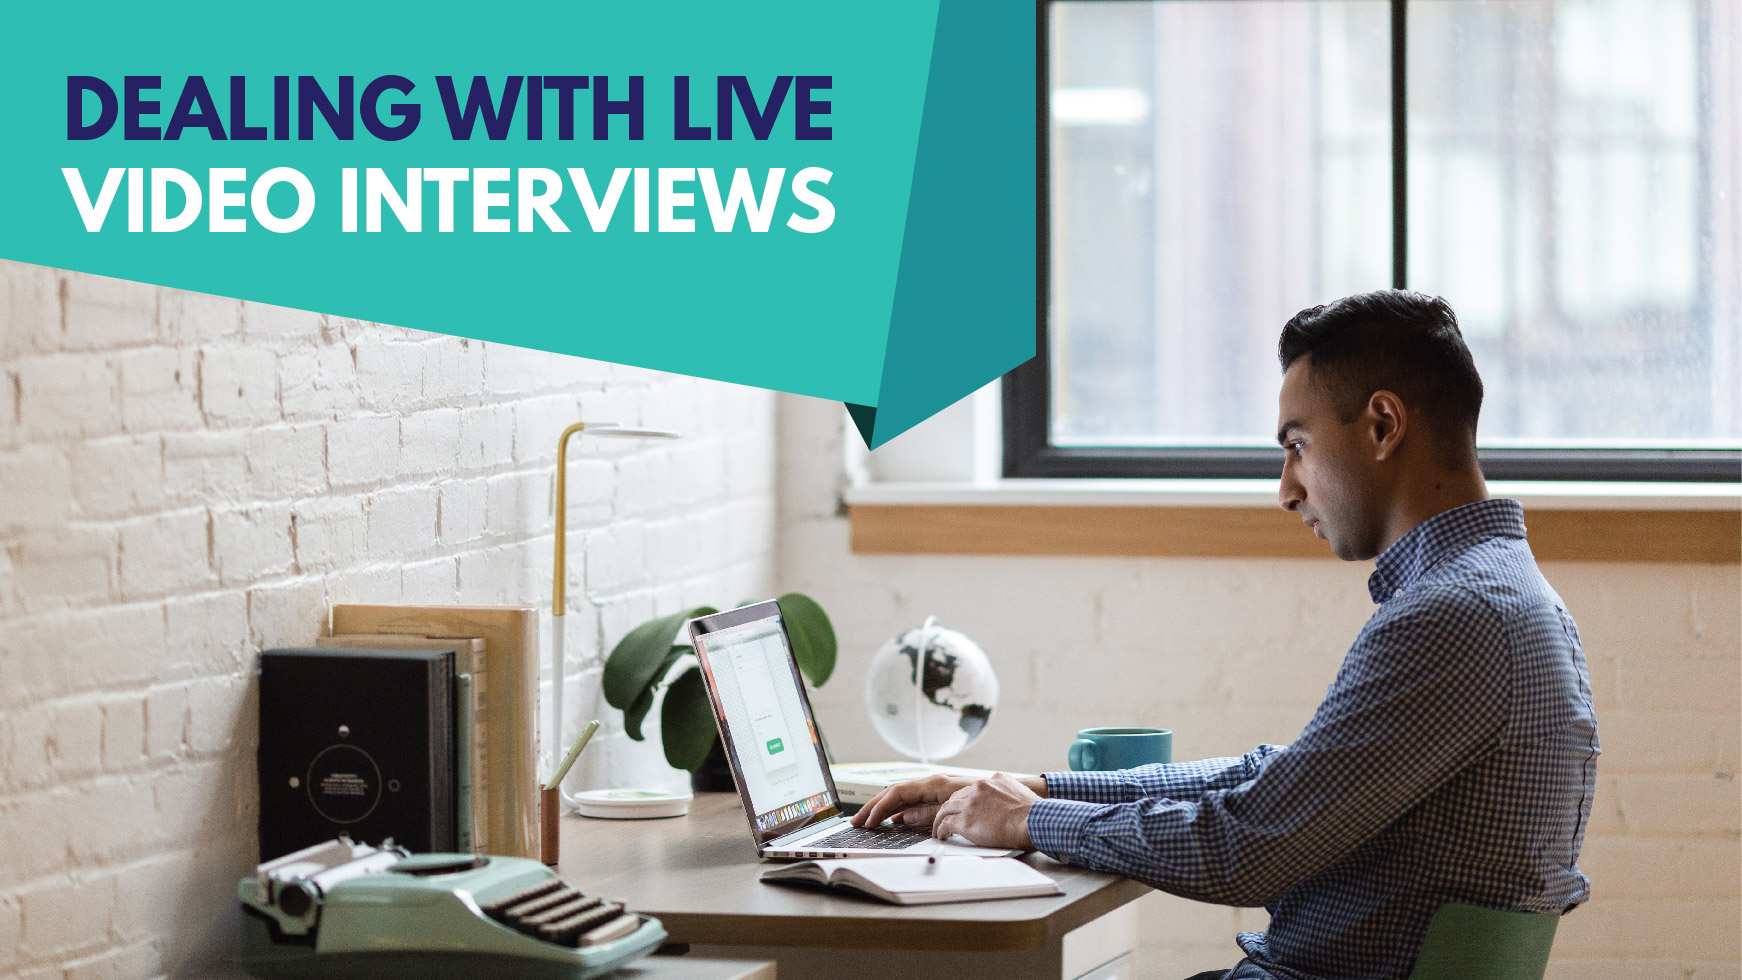 gradsingapore Dealing with Live Video Interviews_Feature Image